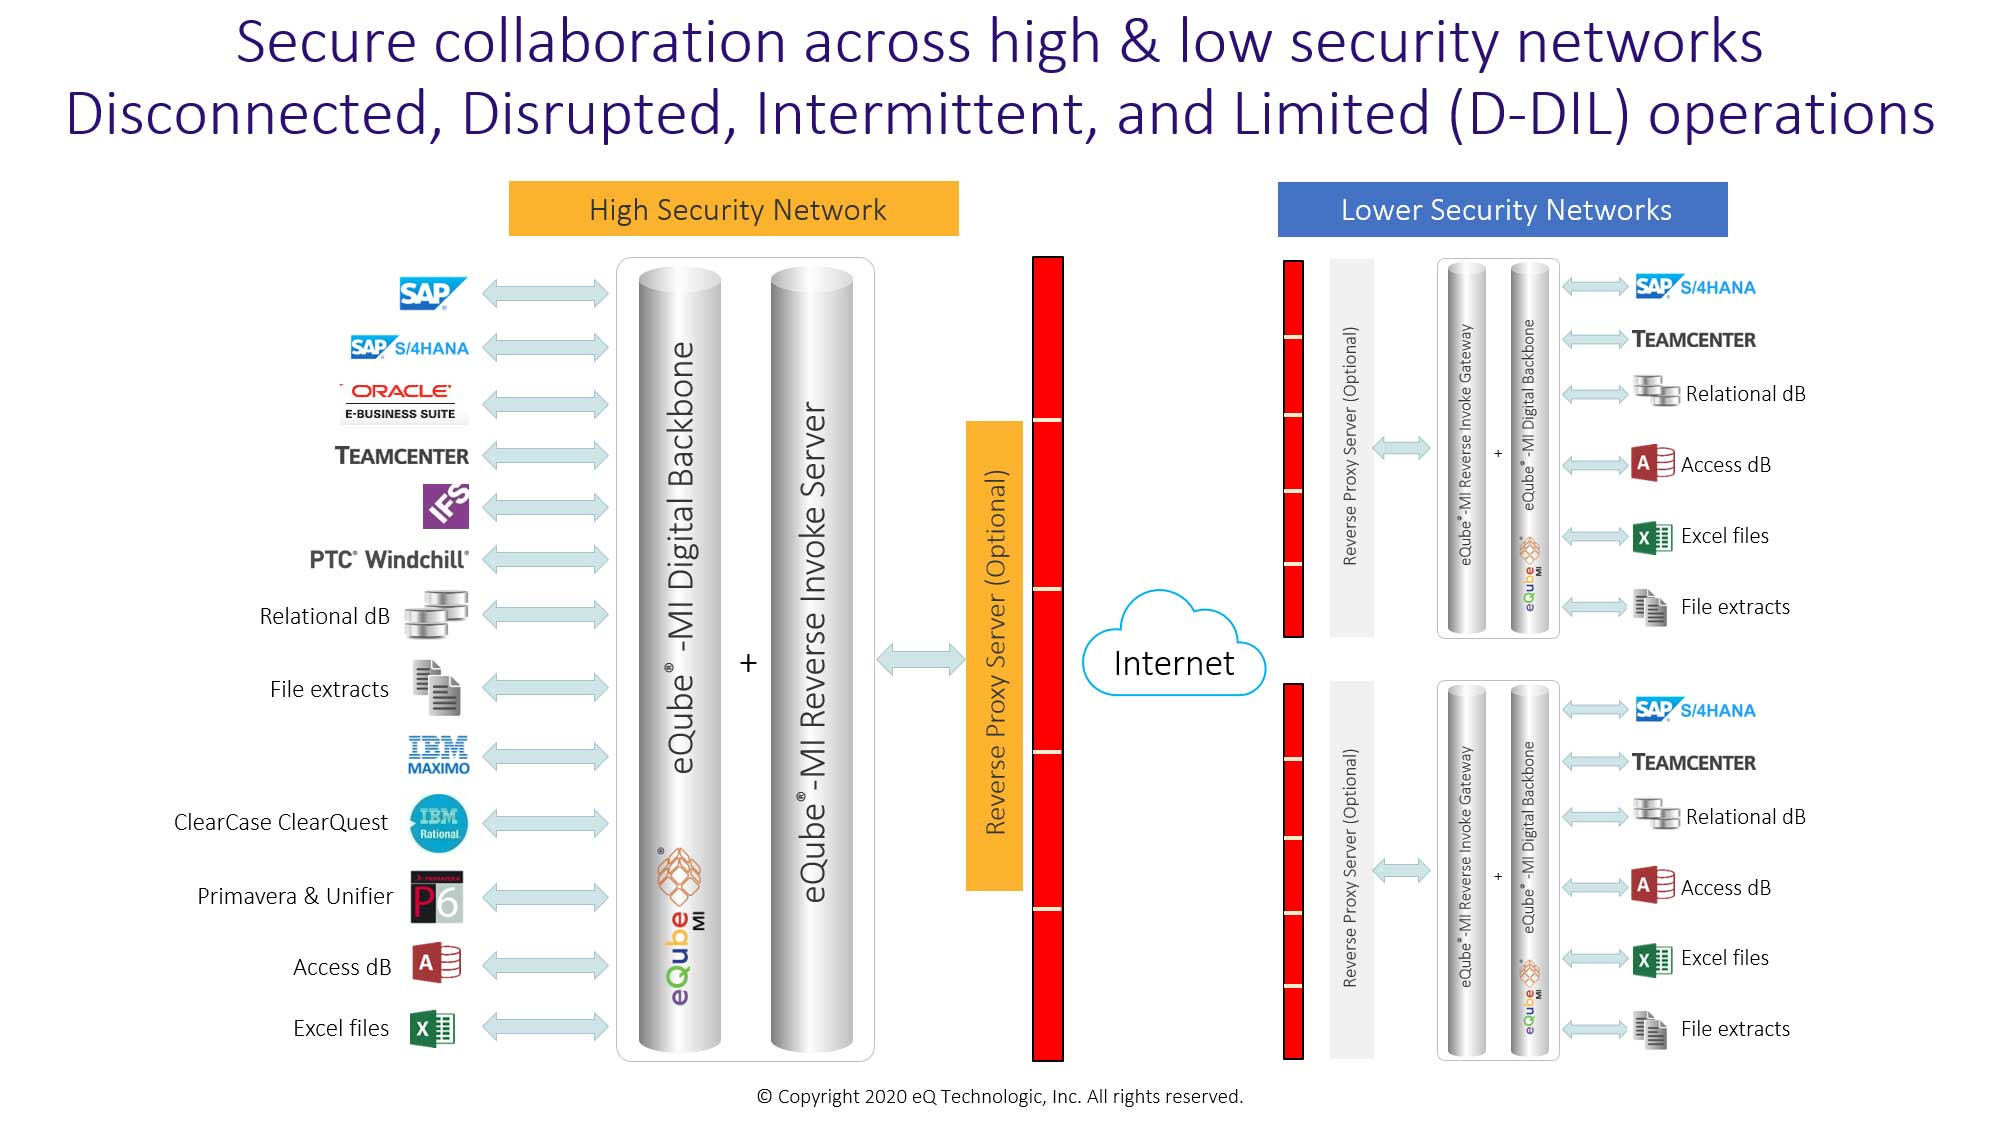 Secure collaboration between high and lower security level networks geography spread apart